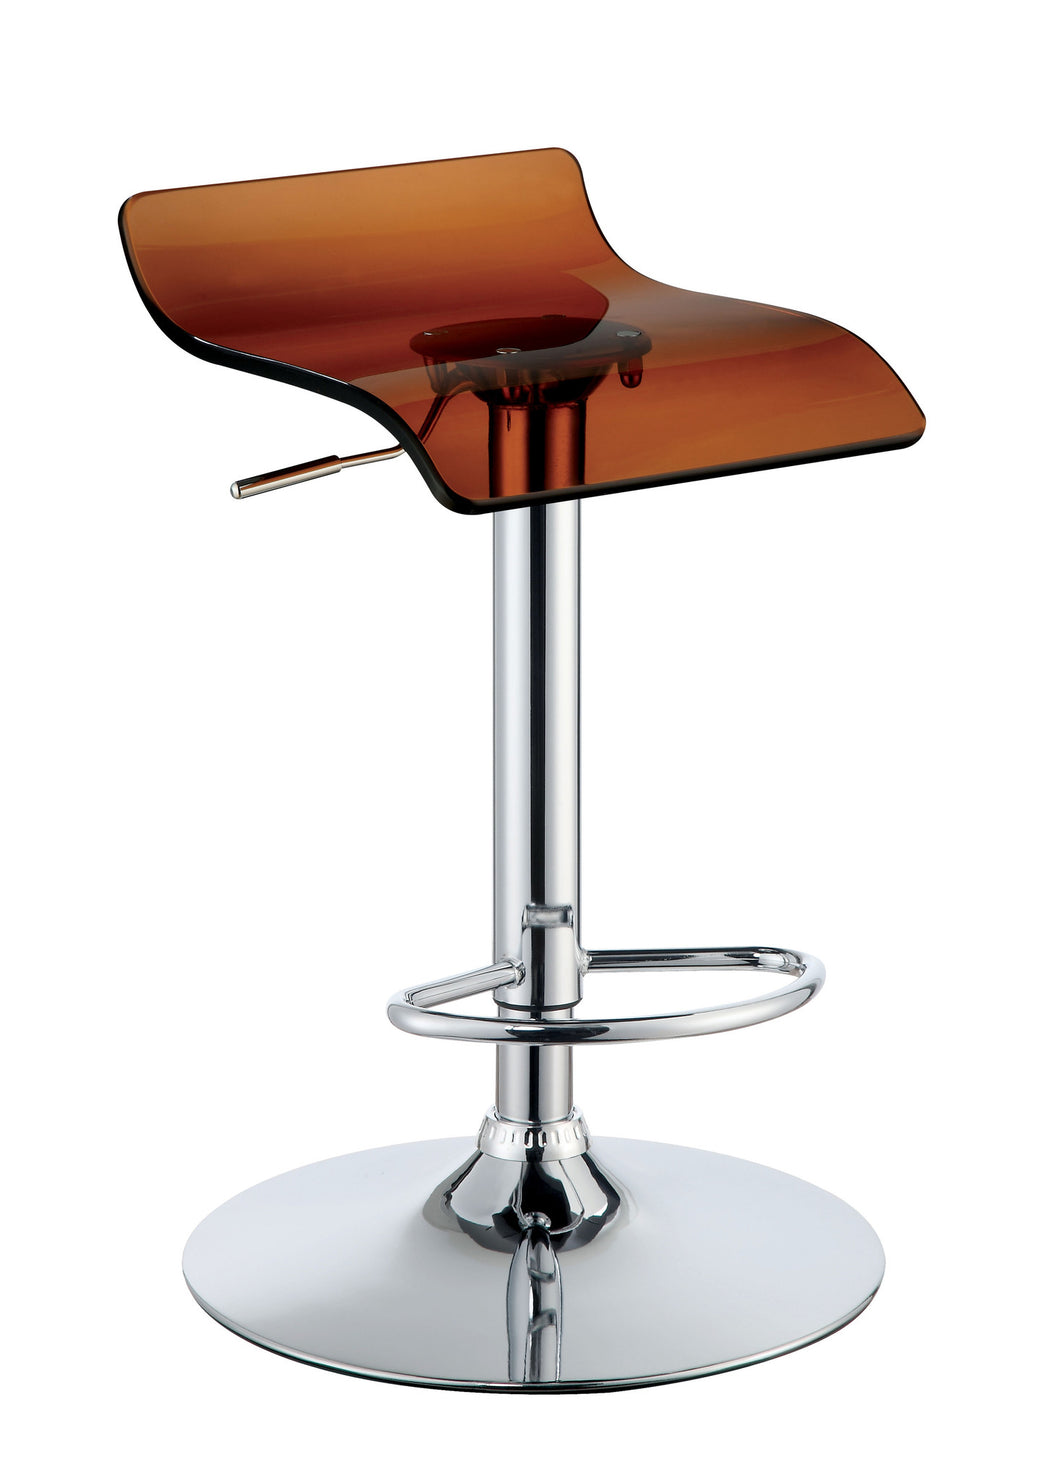 Lilith modern low back waterfall bar chair 24 7 shop at home for Waterfall seat design